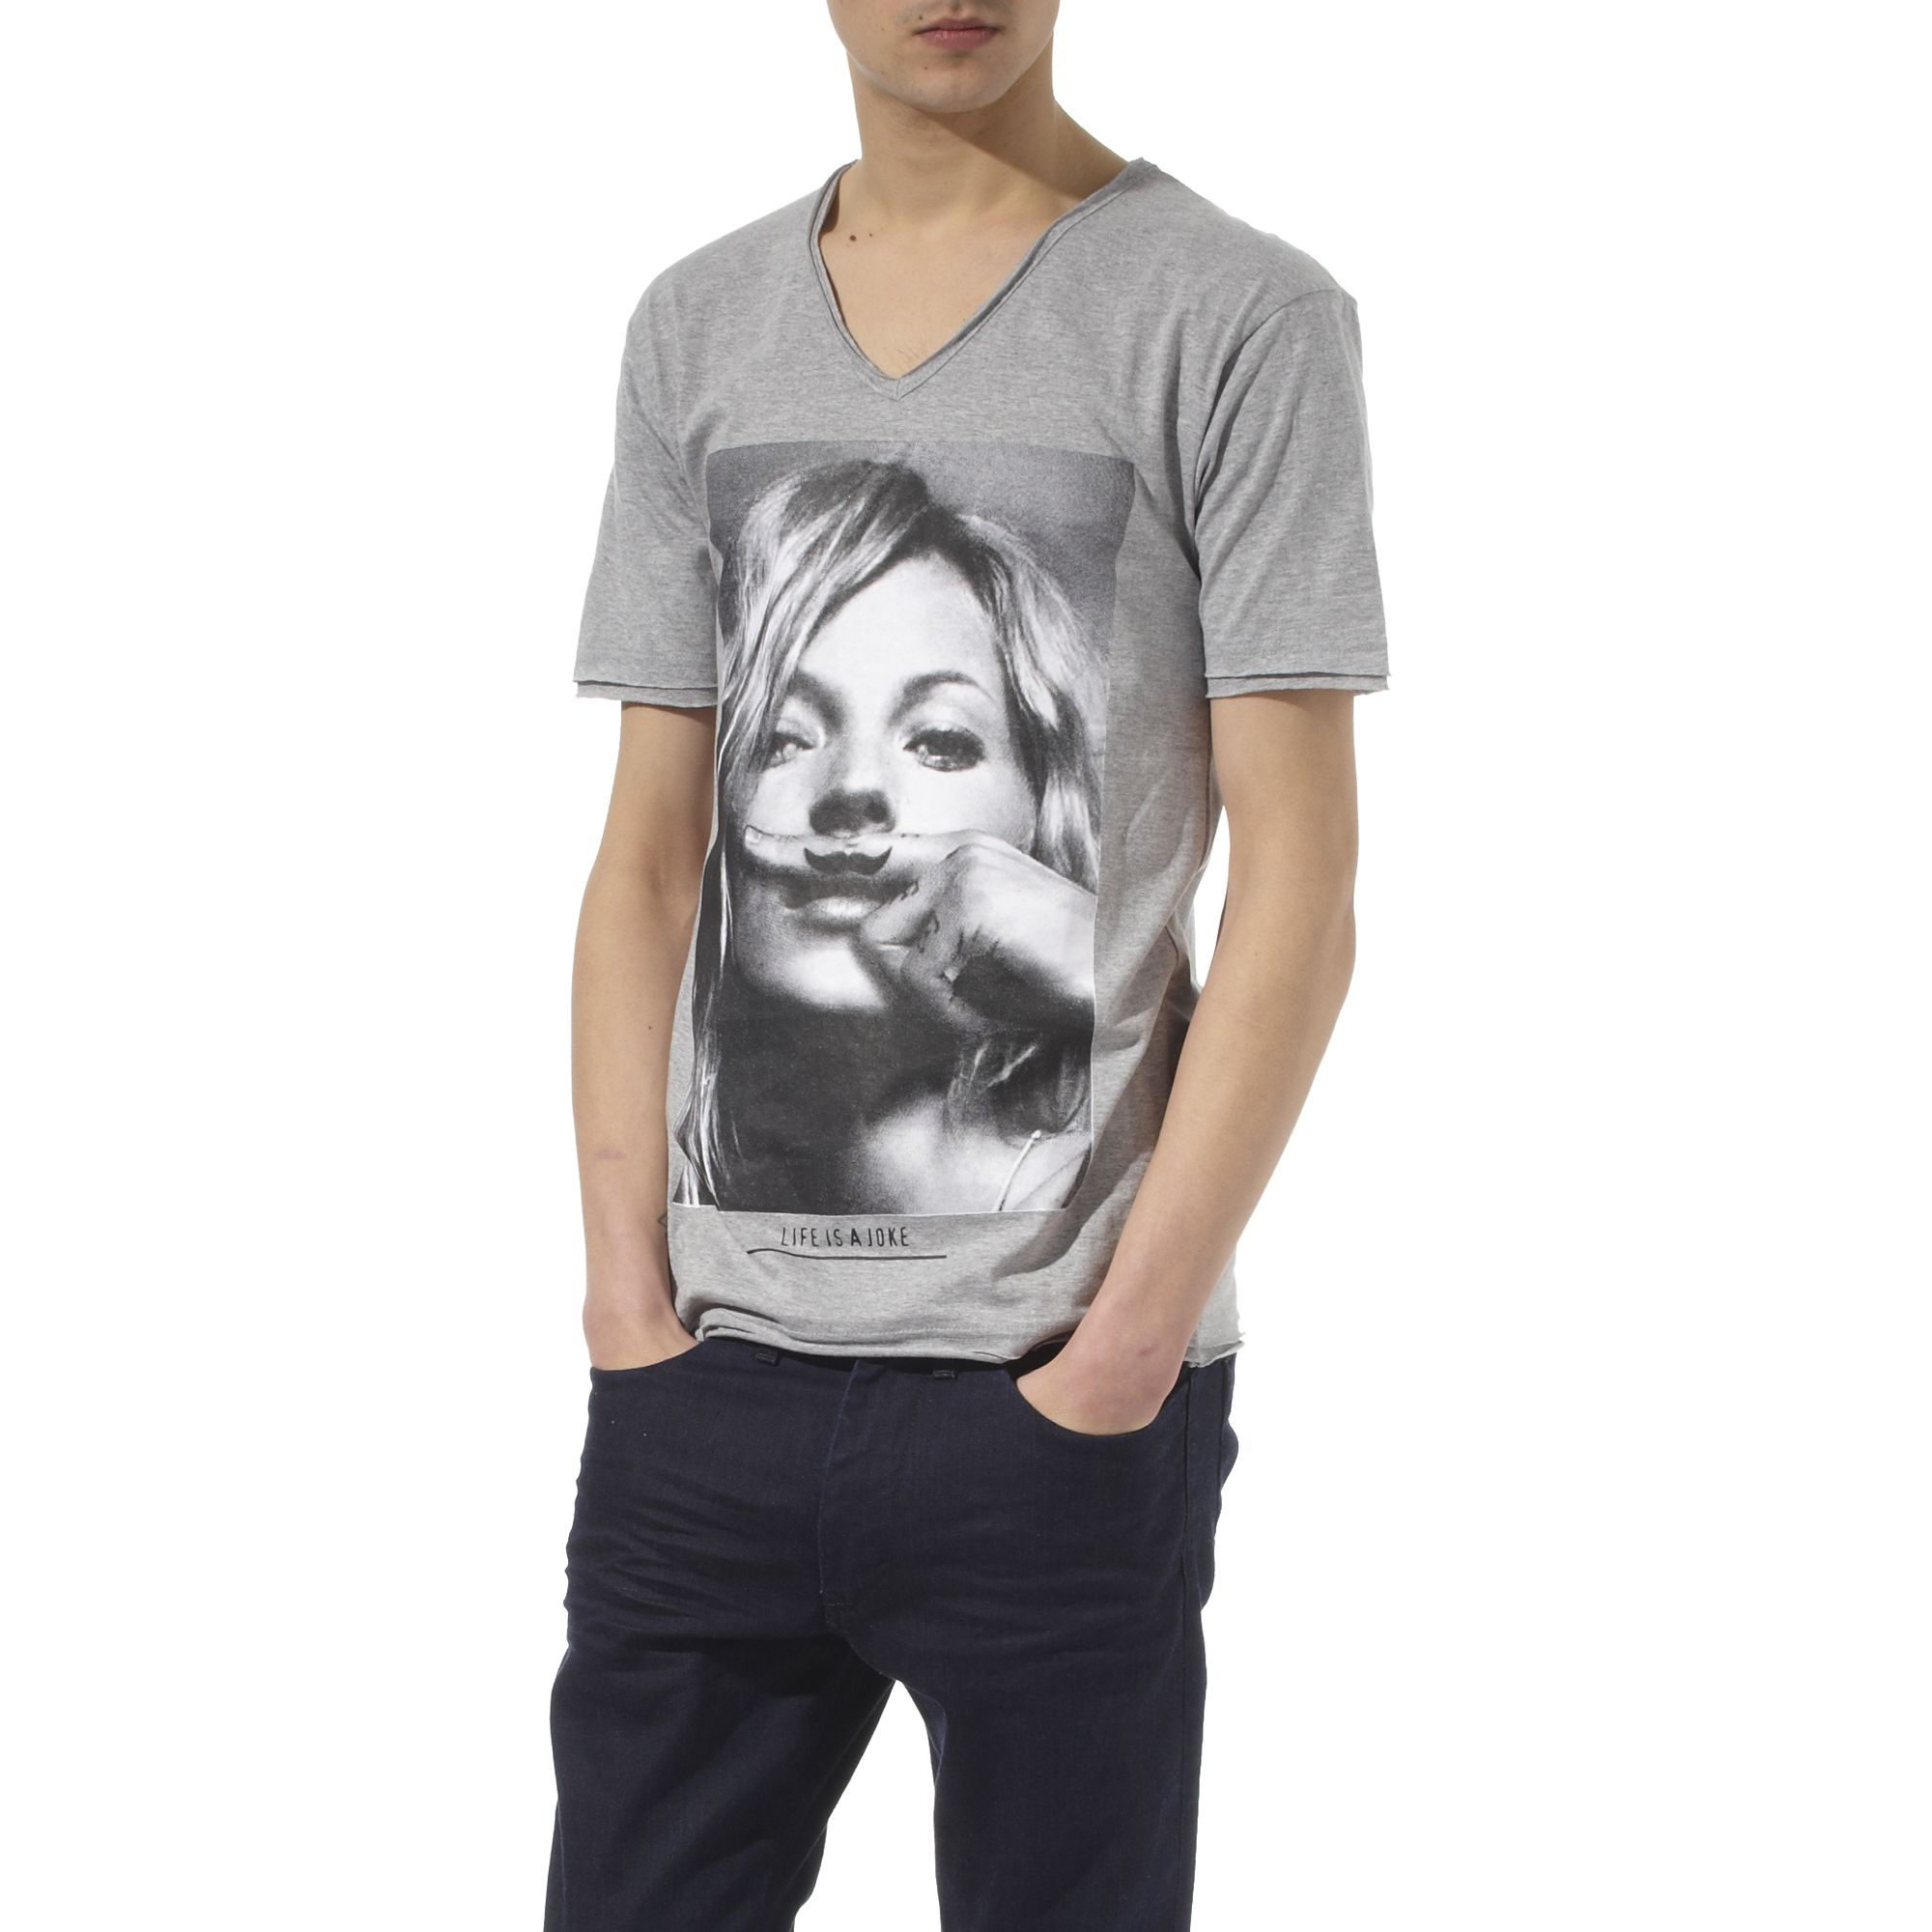 eleven paris kate moss moustache t shirt in gray for men grey lyst. Black Bedroom Furniture Sets. Home Design Ideas